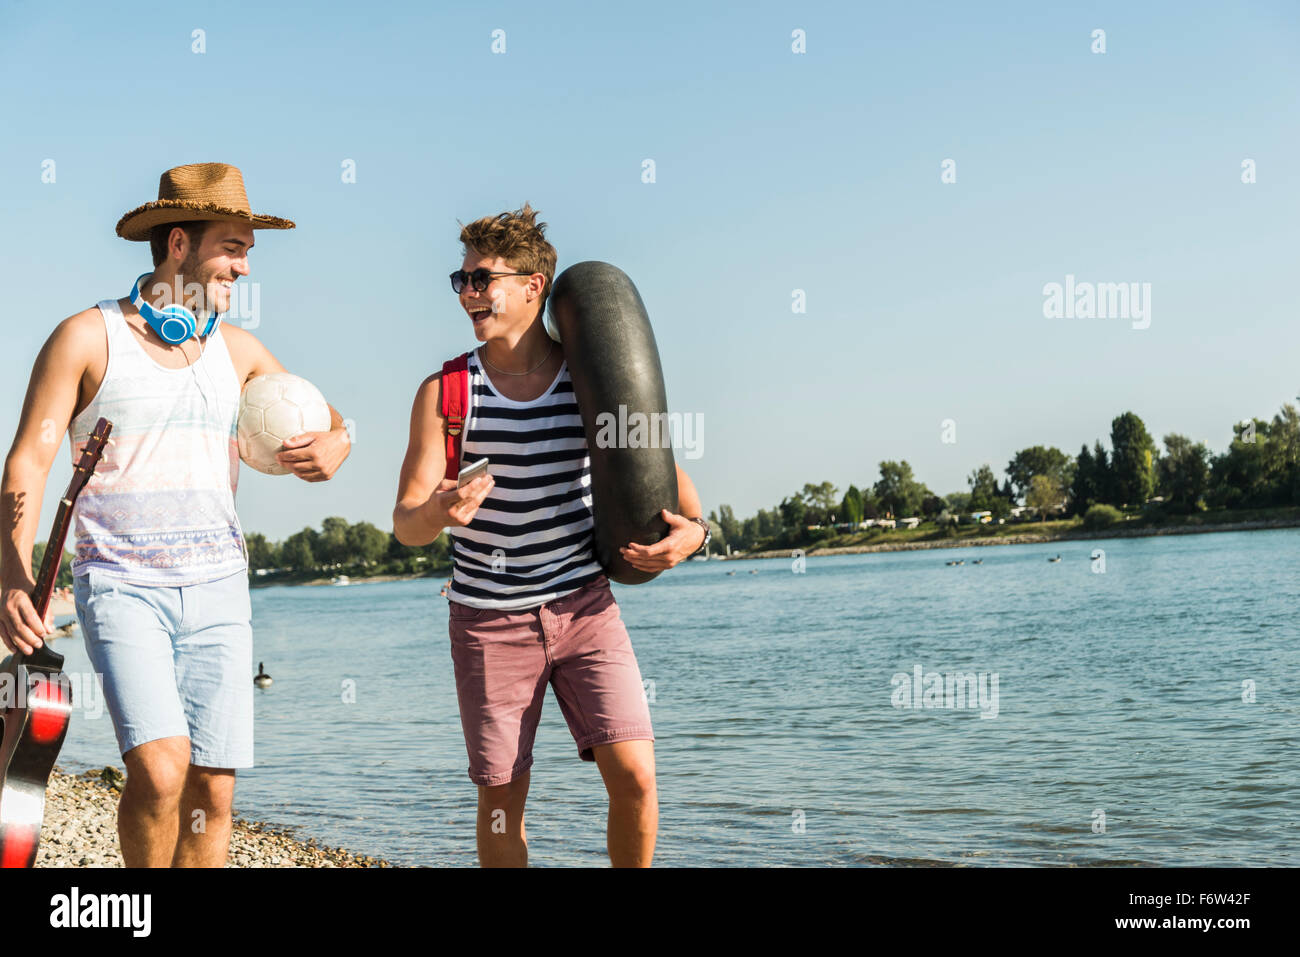 Two friends with inner tube and guitar walking at the riverside - Stock Image